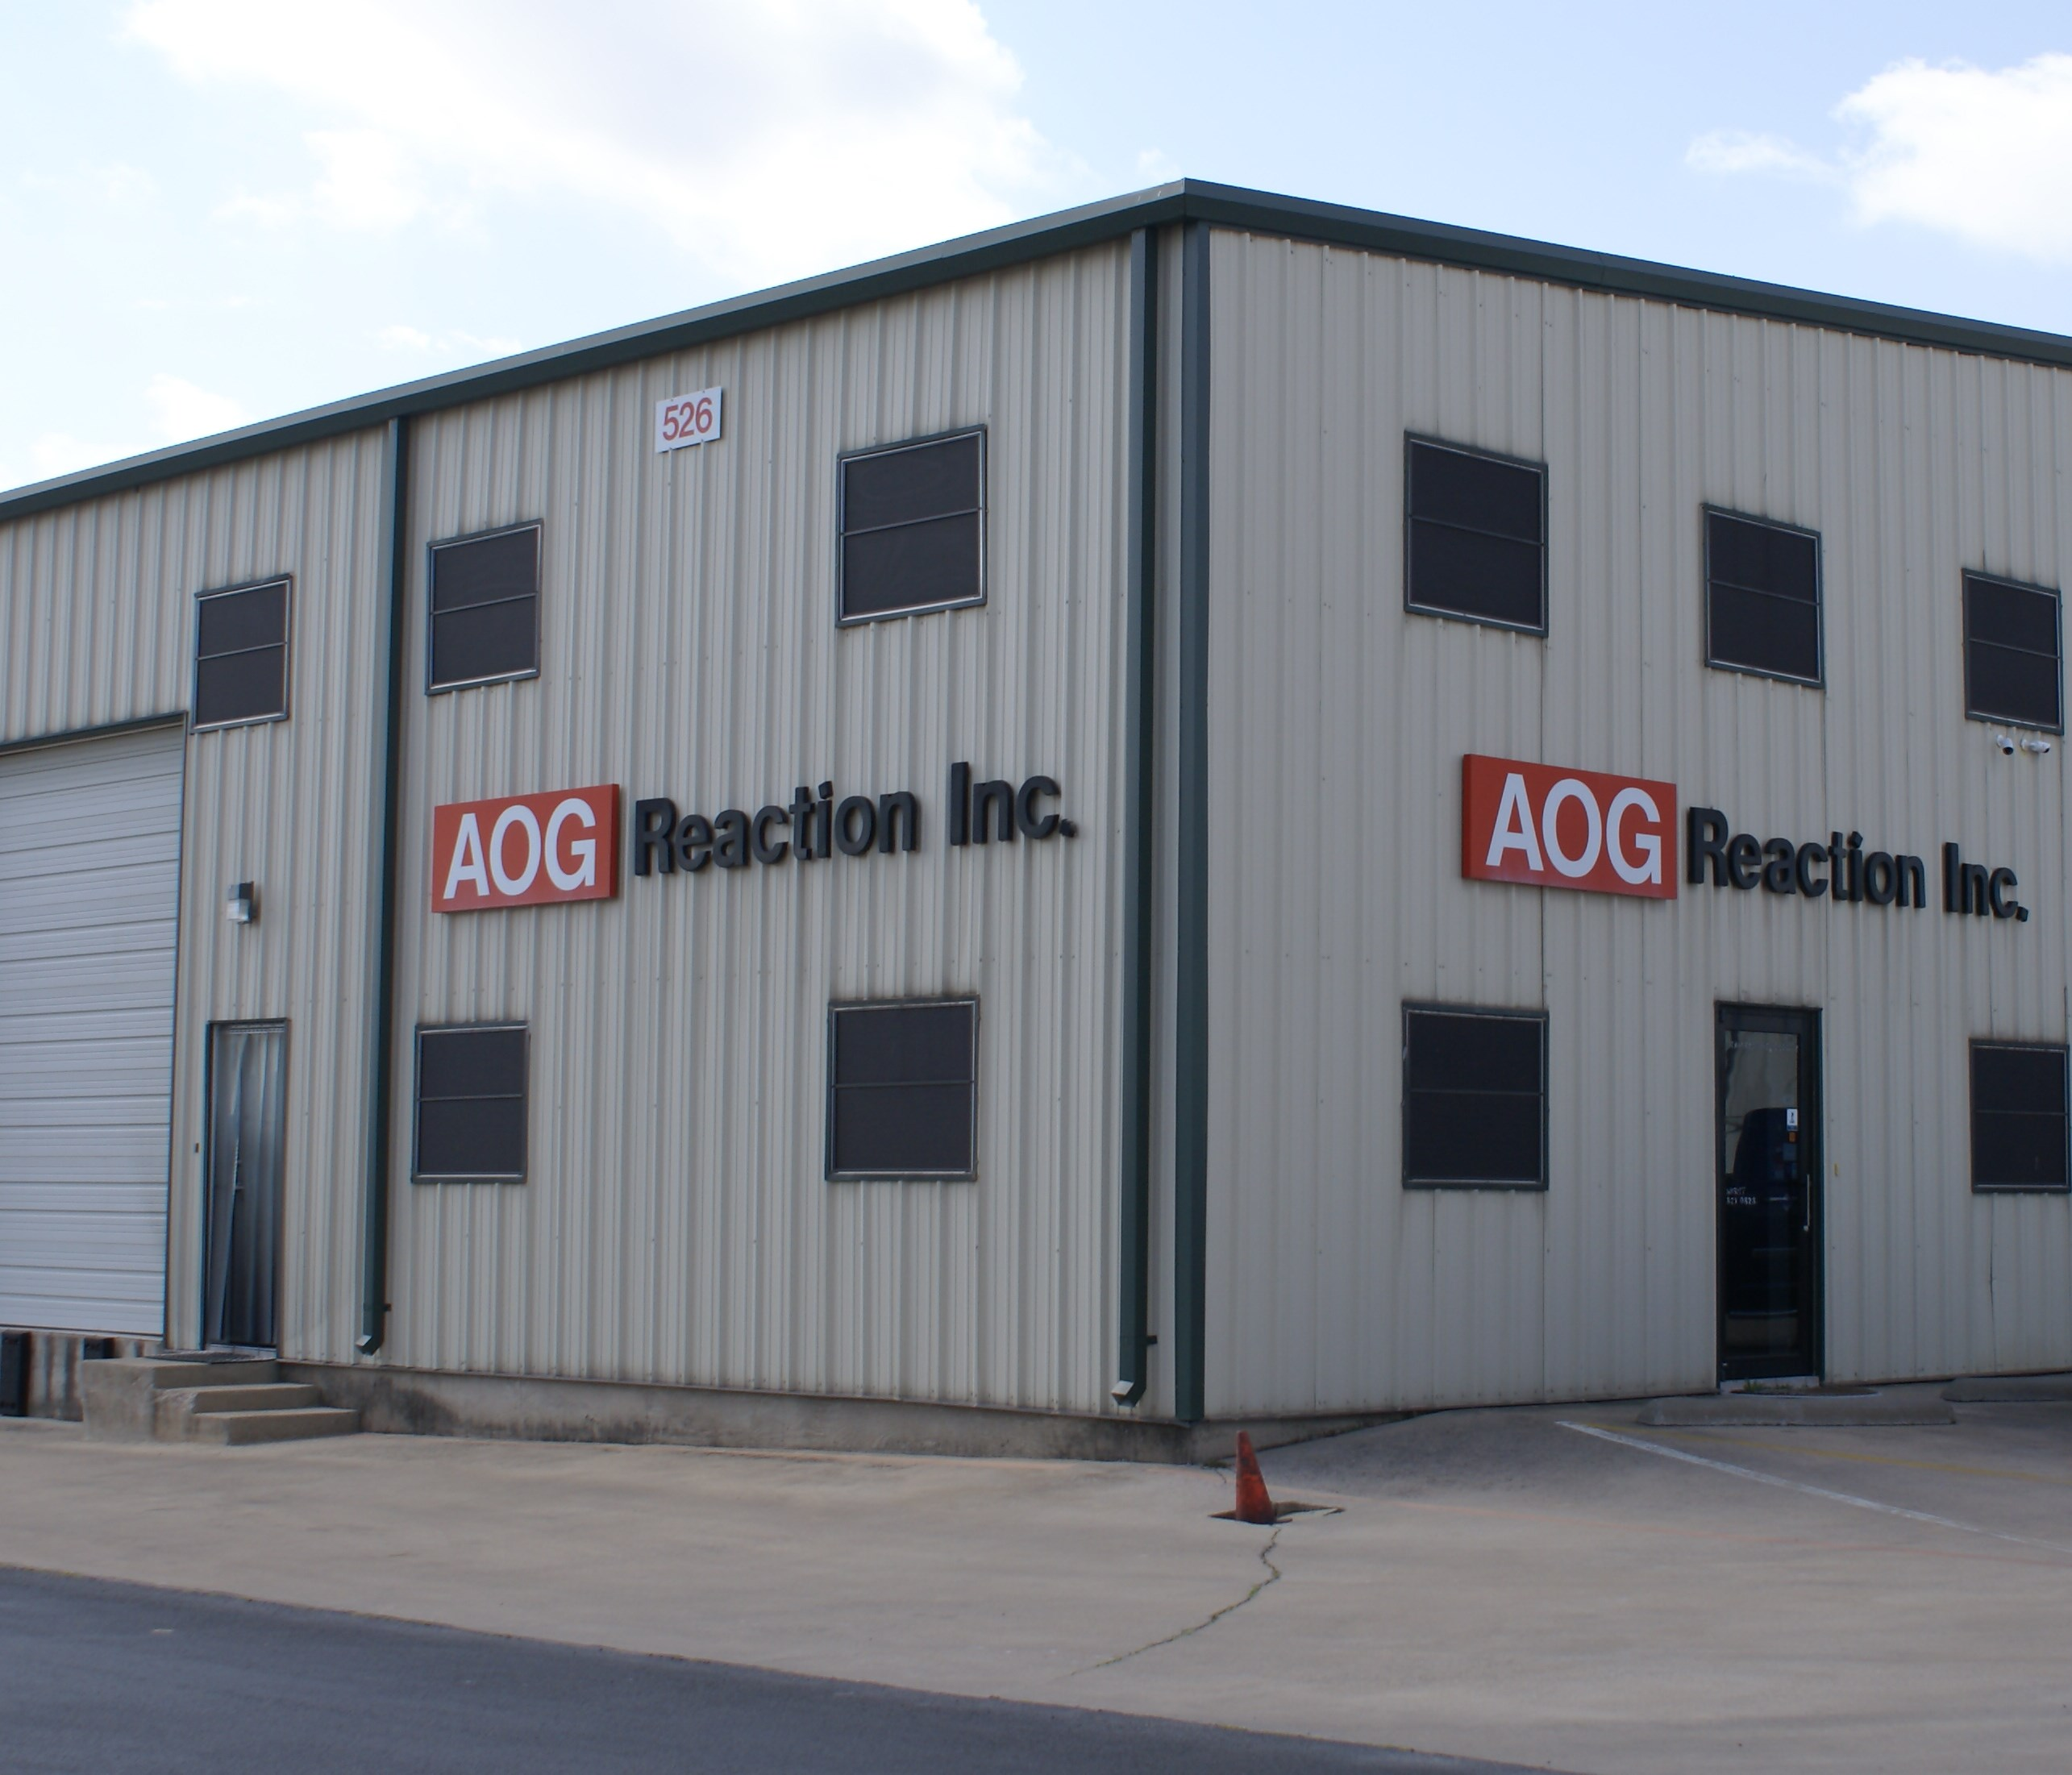 AOG Building